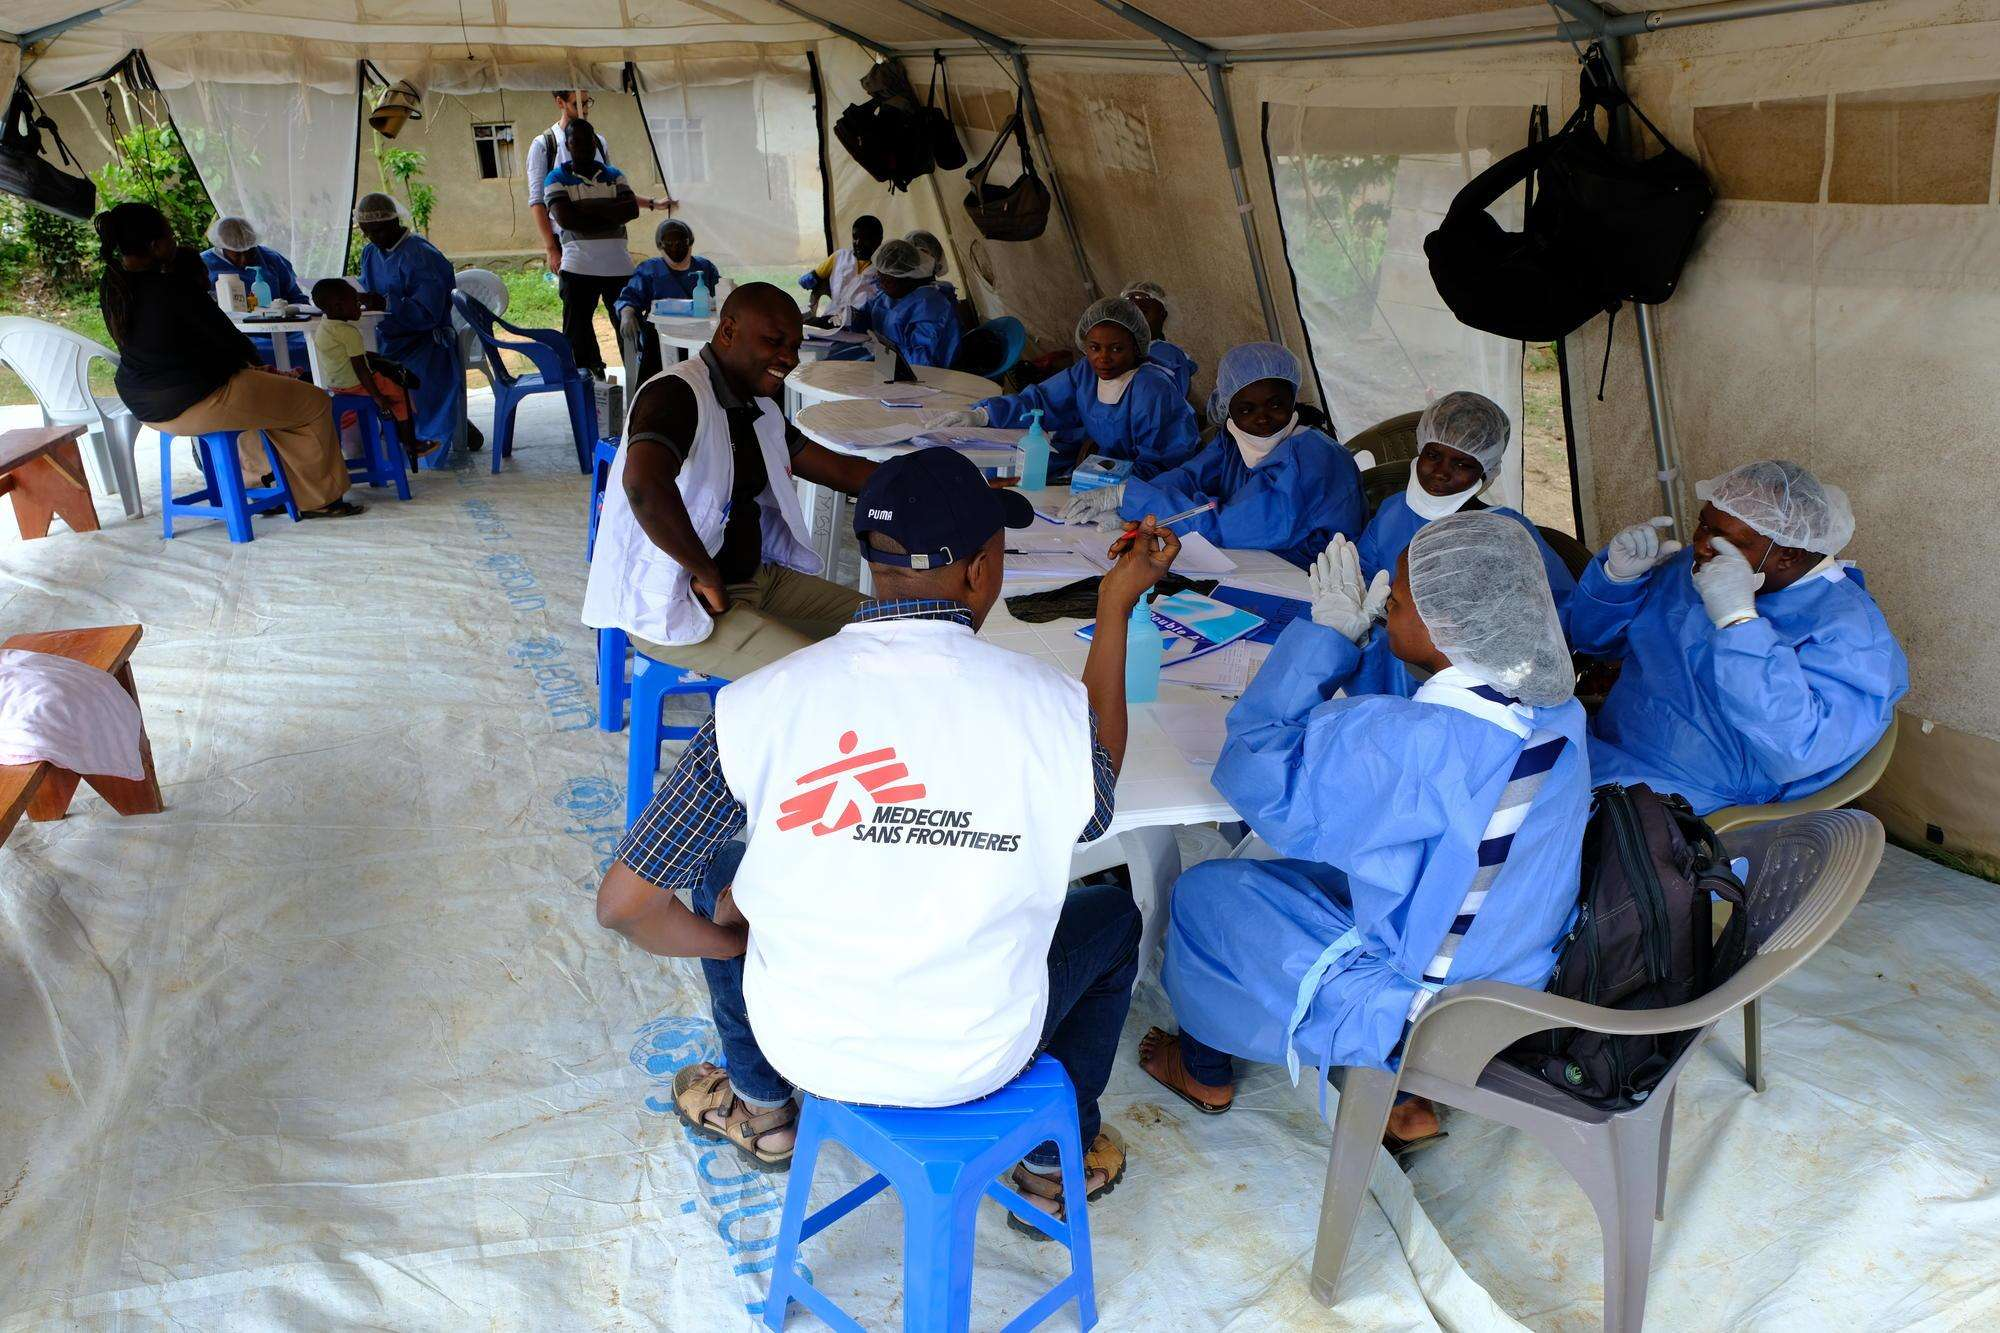 Vaccinating people against Ebola: The challenges of containing the outbreak in Democratic Republic of Congo